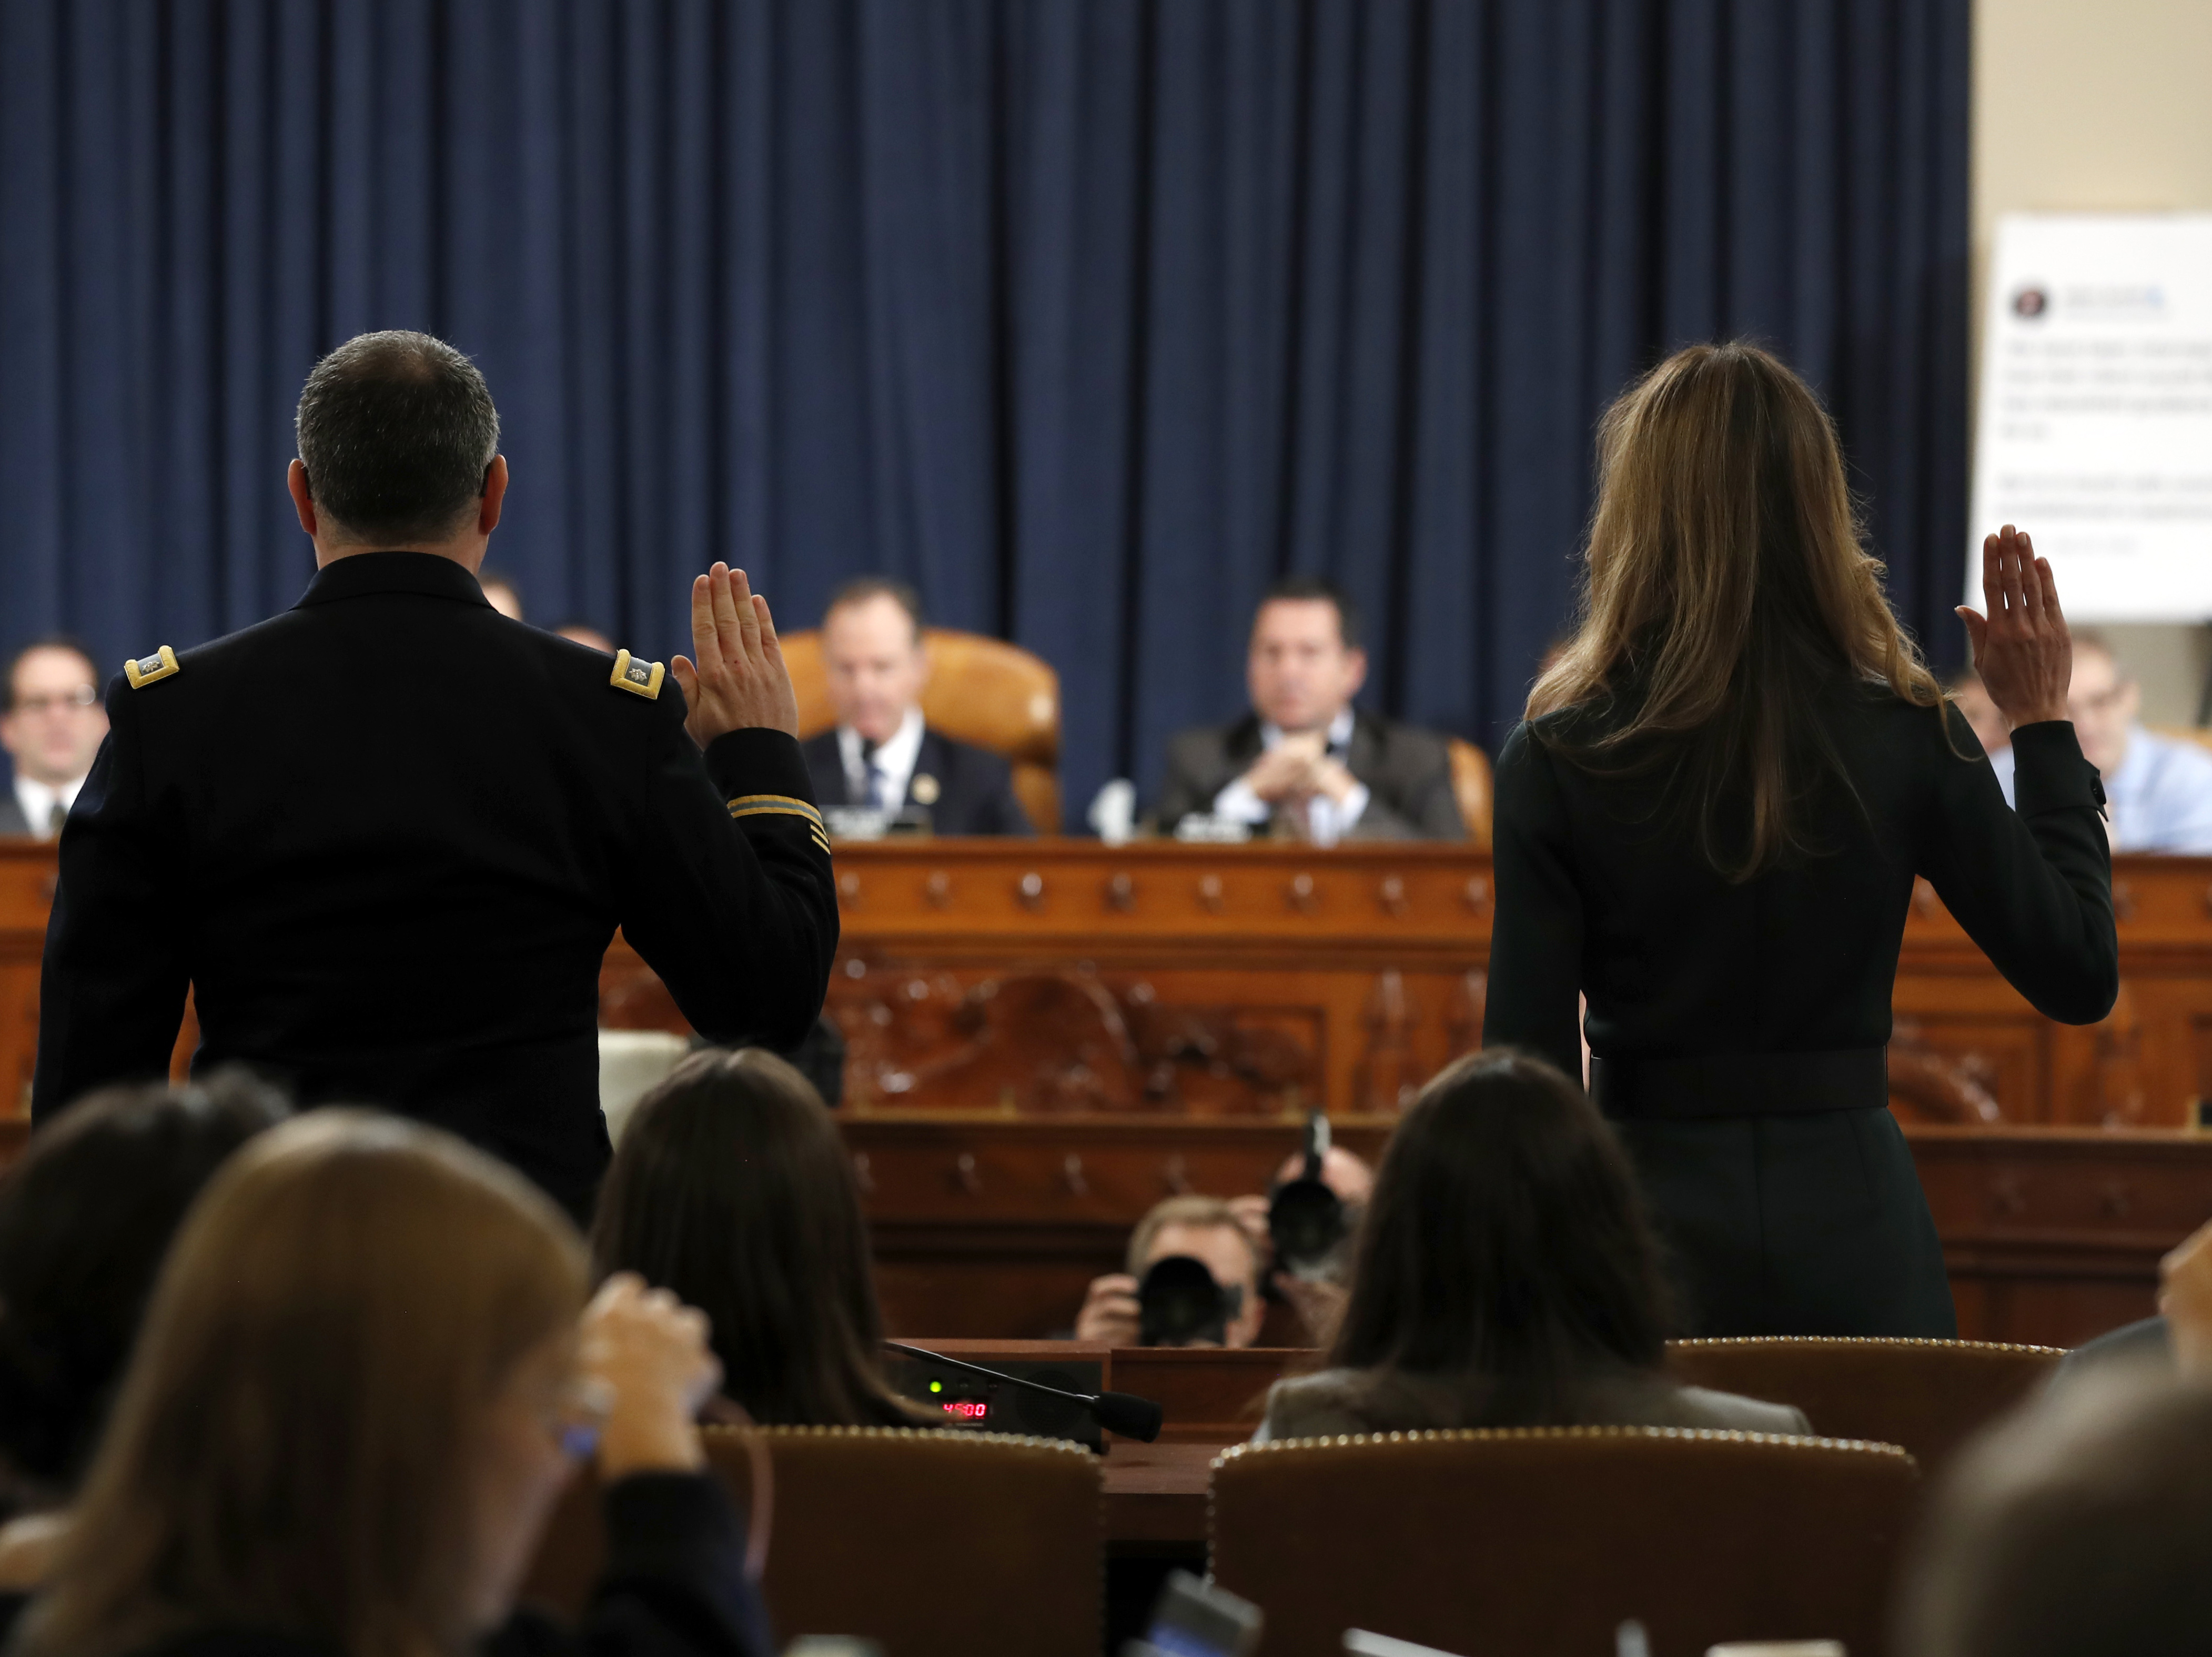 Get Caught Up: Key Takeaways From Tuesday's Impeachment Hearing